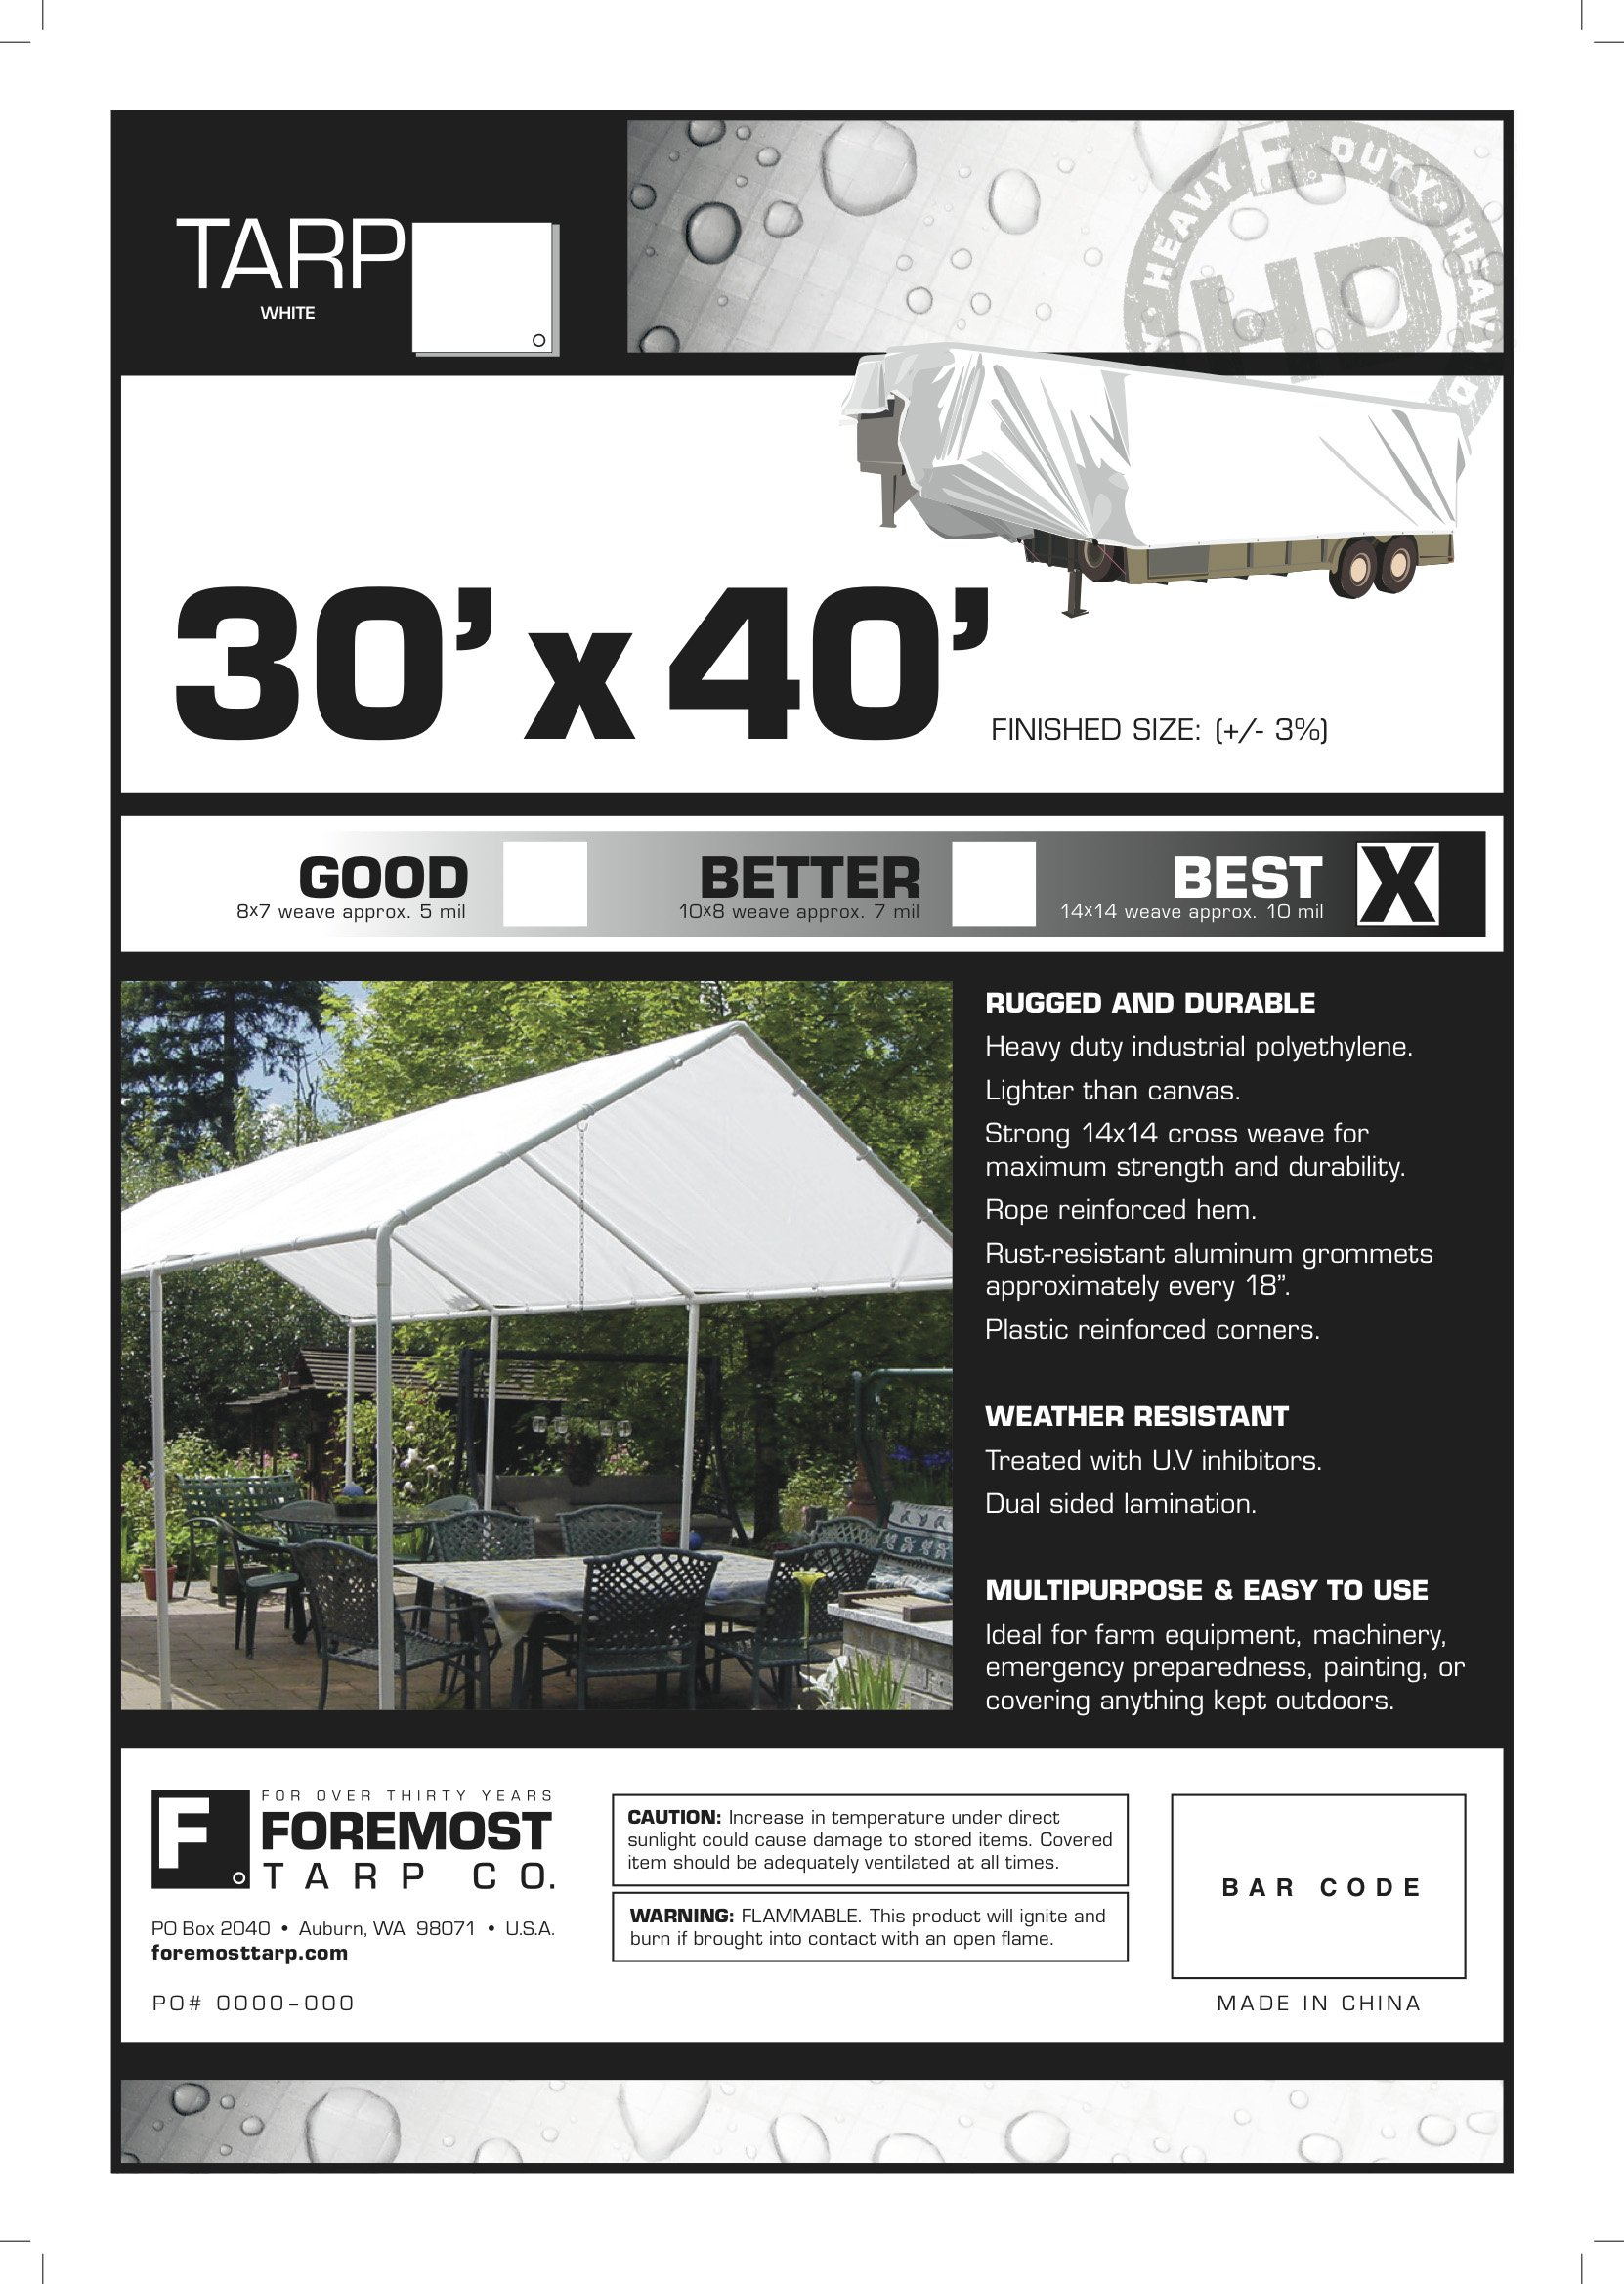 30' x 40' Dry Top Heavy Duty White Full Size 10-mil Poly Tarp item #330403 by DRY TOP